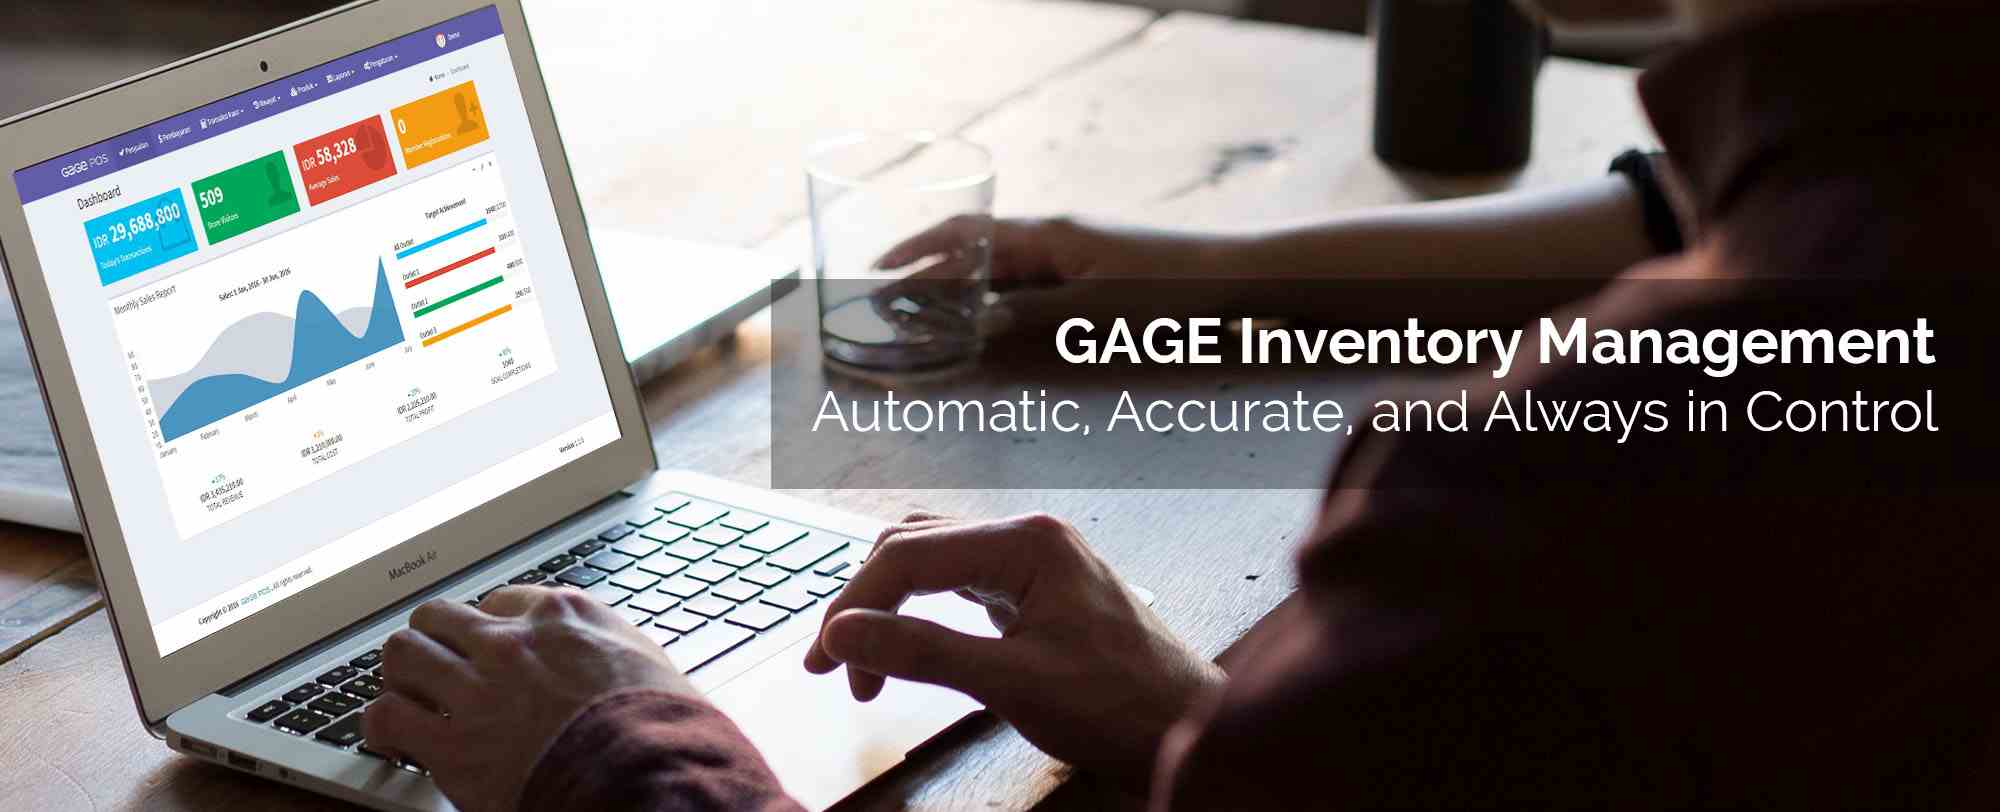 GAGE POS Inventory management - Automatic, Accurate, always in control